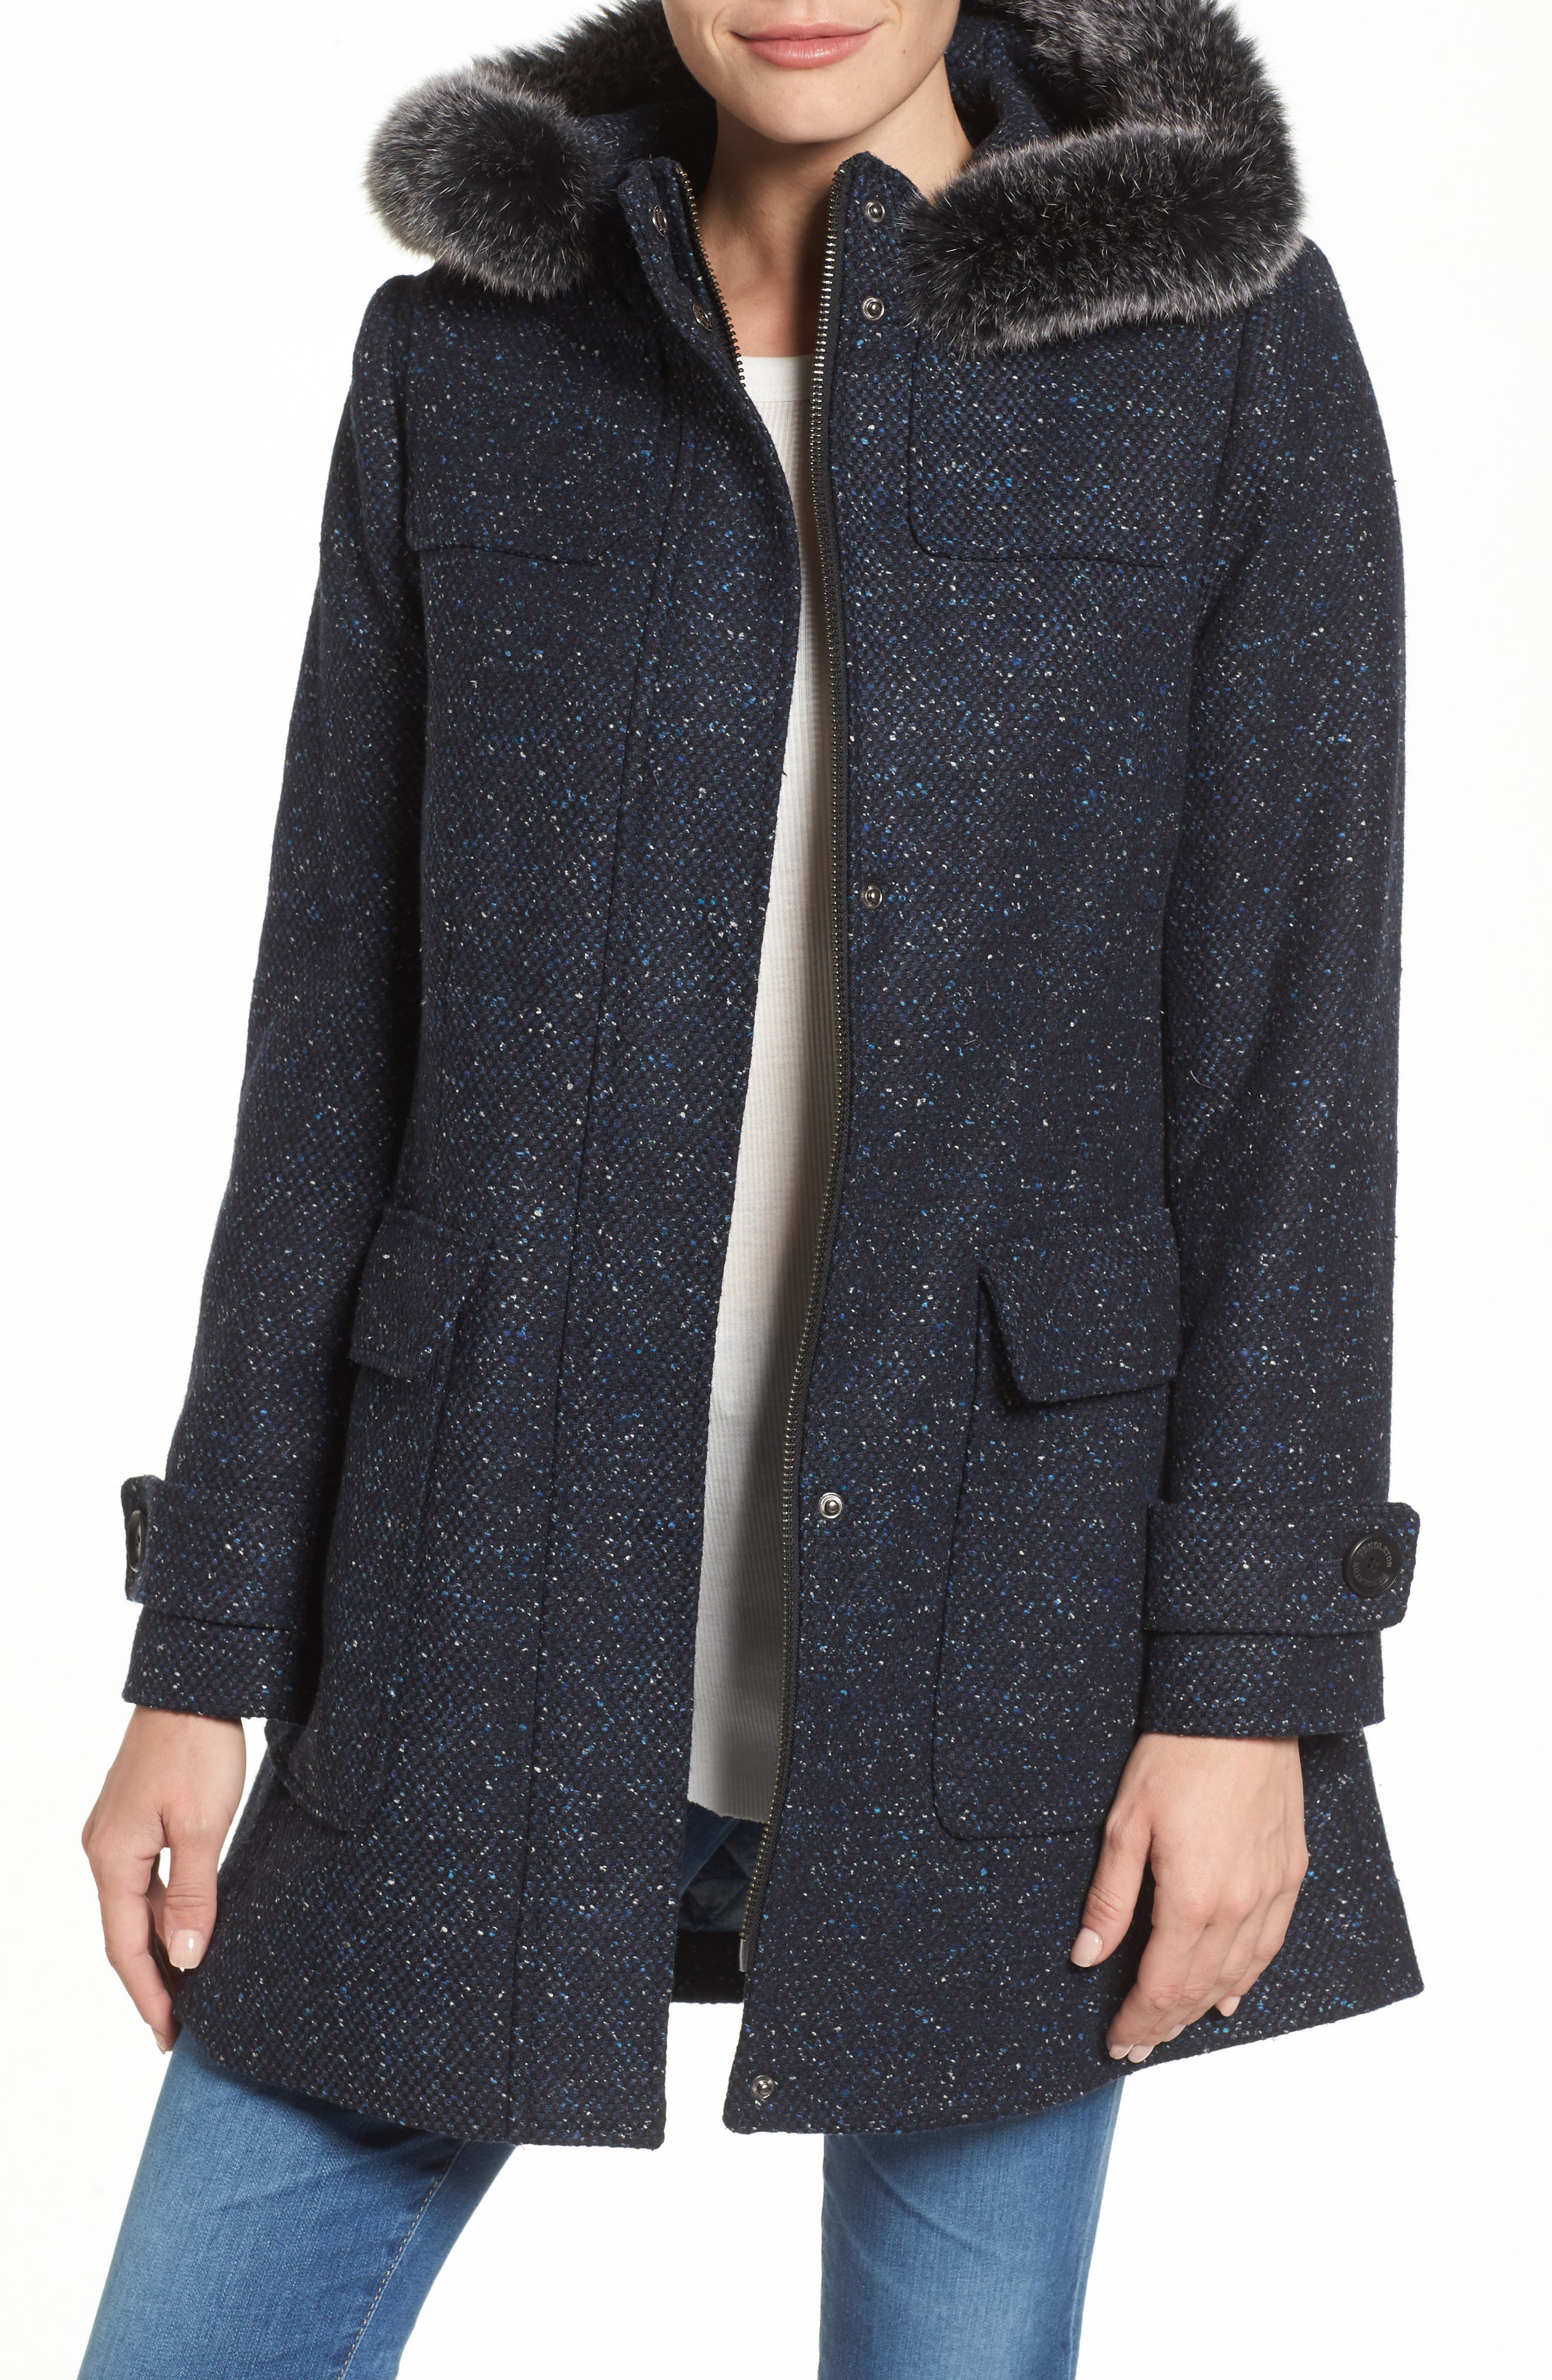 Main Image - Pendleton Portland Wool Duffle Coat with Genuine Fur Trim